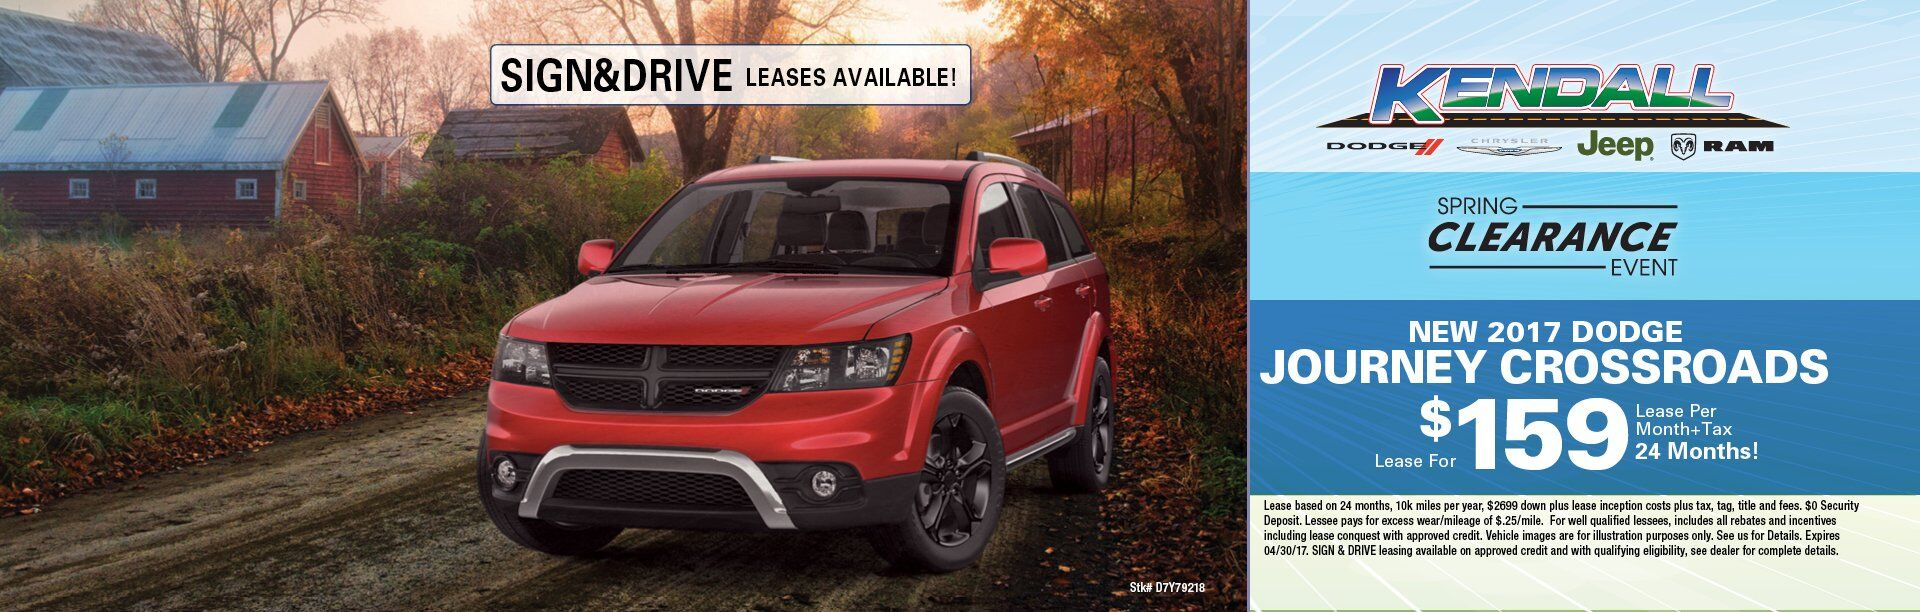 2017 Dodge Journey Crossroads